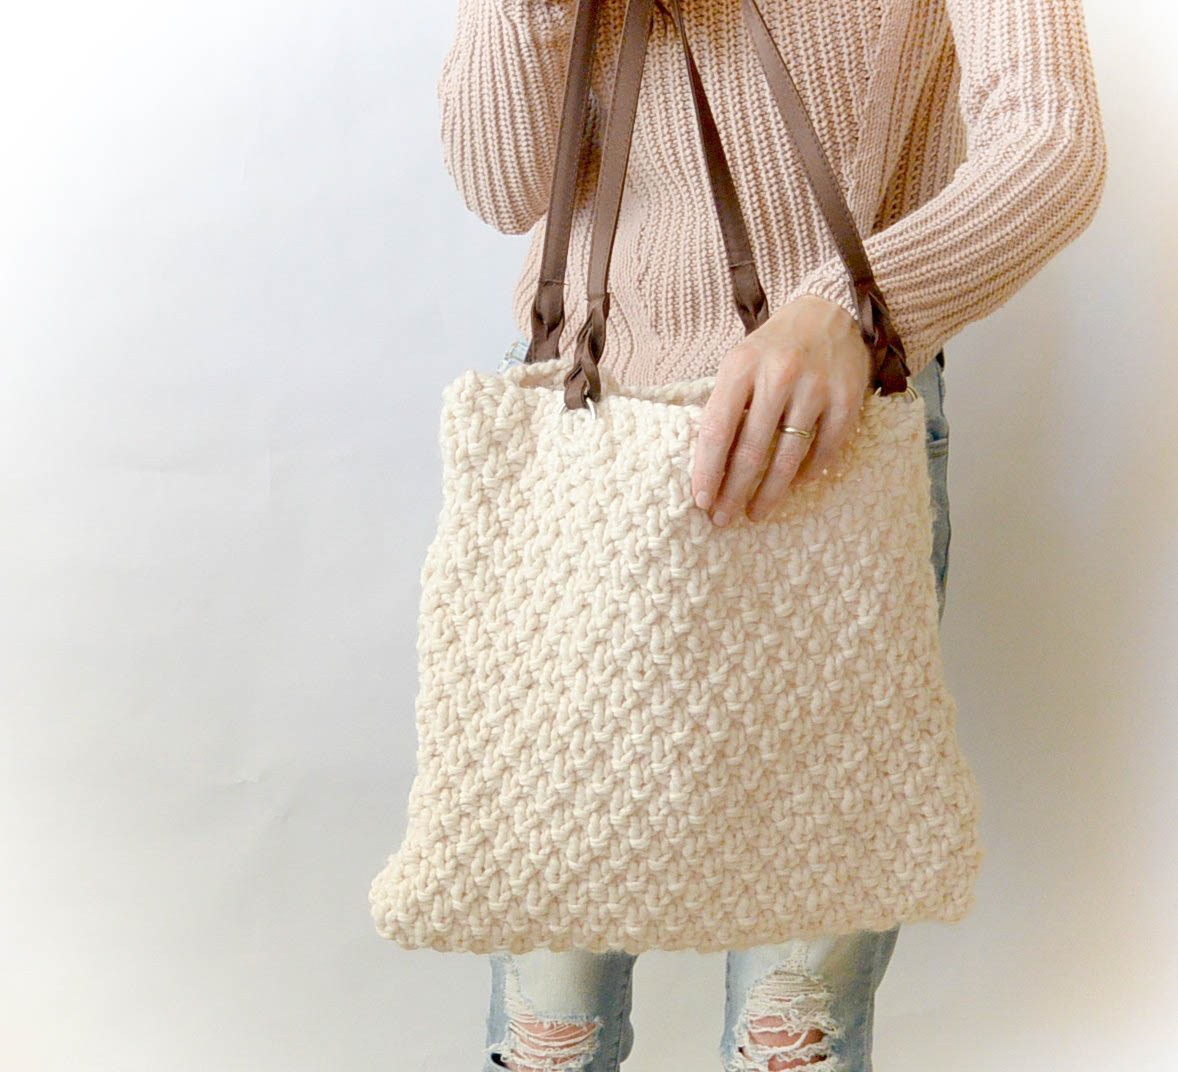 Knitted Handbags Patterns : Aspen Knit Bag - Free Knitting Pattern Easy Purse